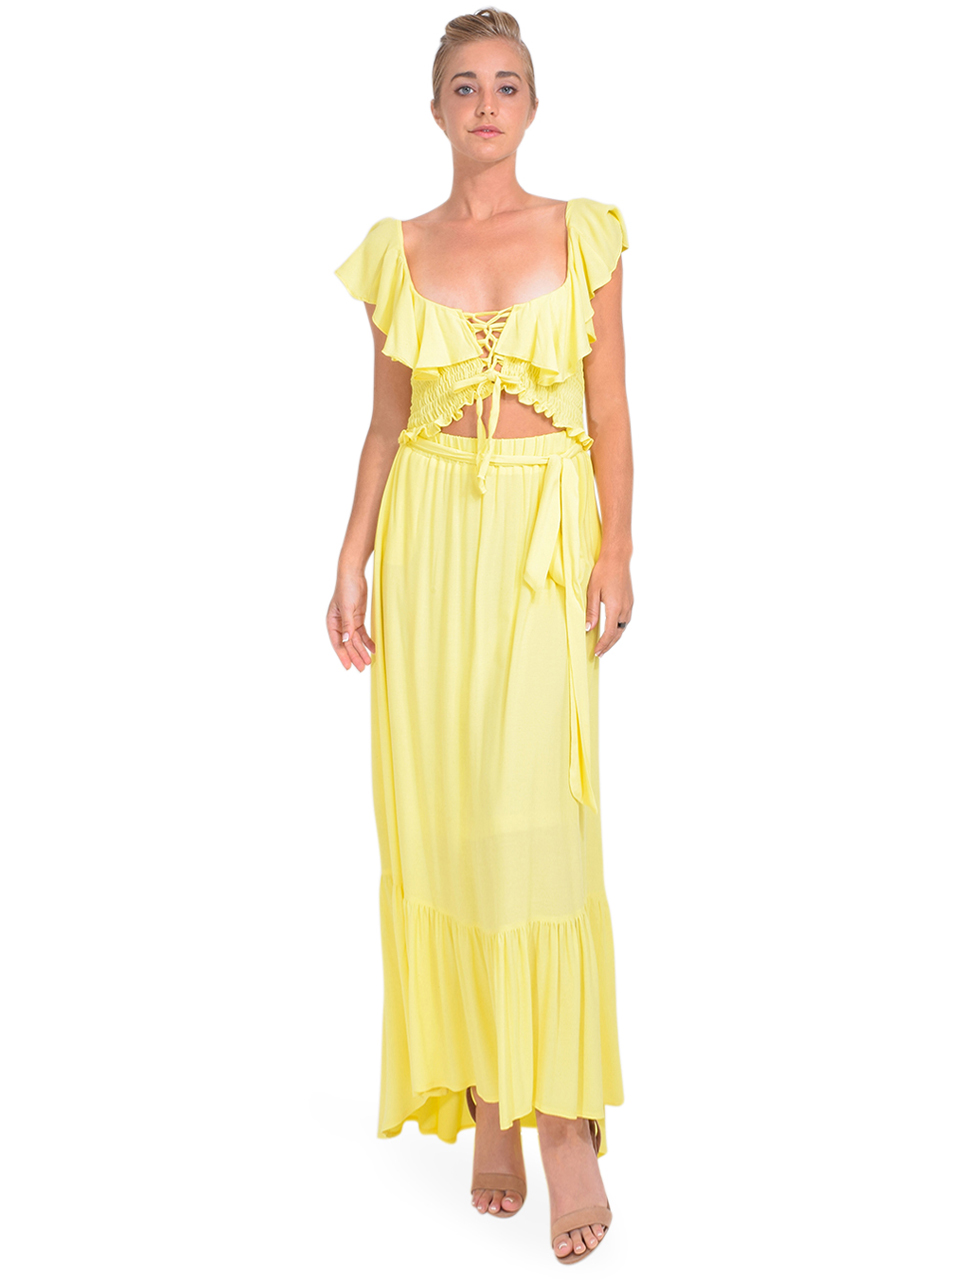 KASIA Sifnos Maxi Skirt in Yellow Full Outfit